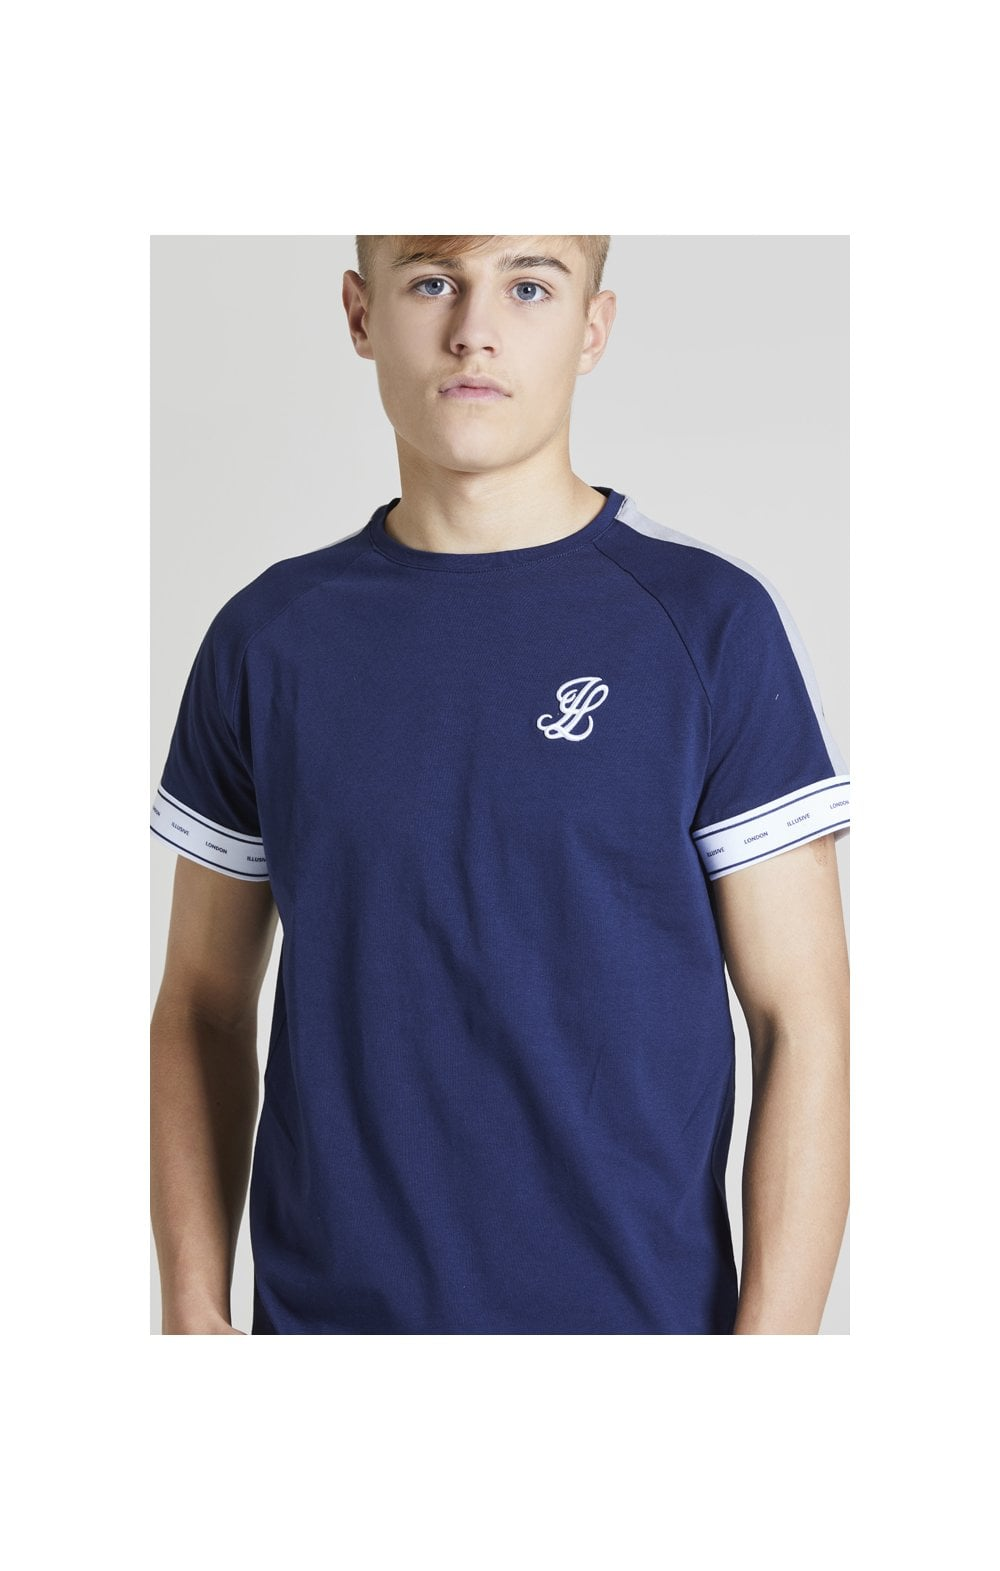 Illusive London Panel Tech Tee - Navy & Grey